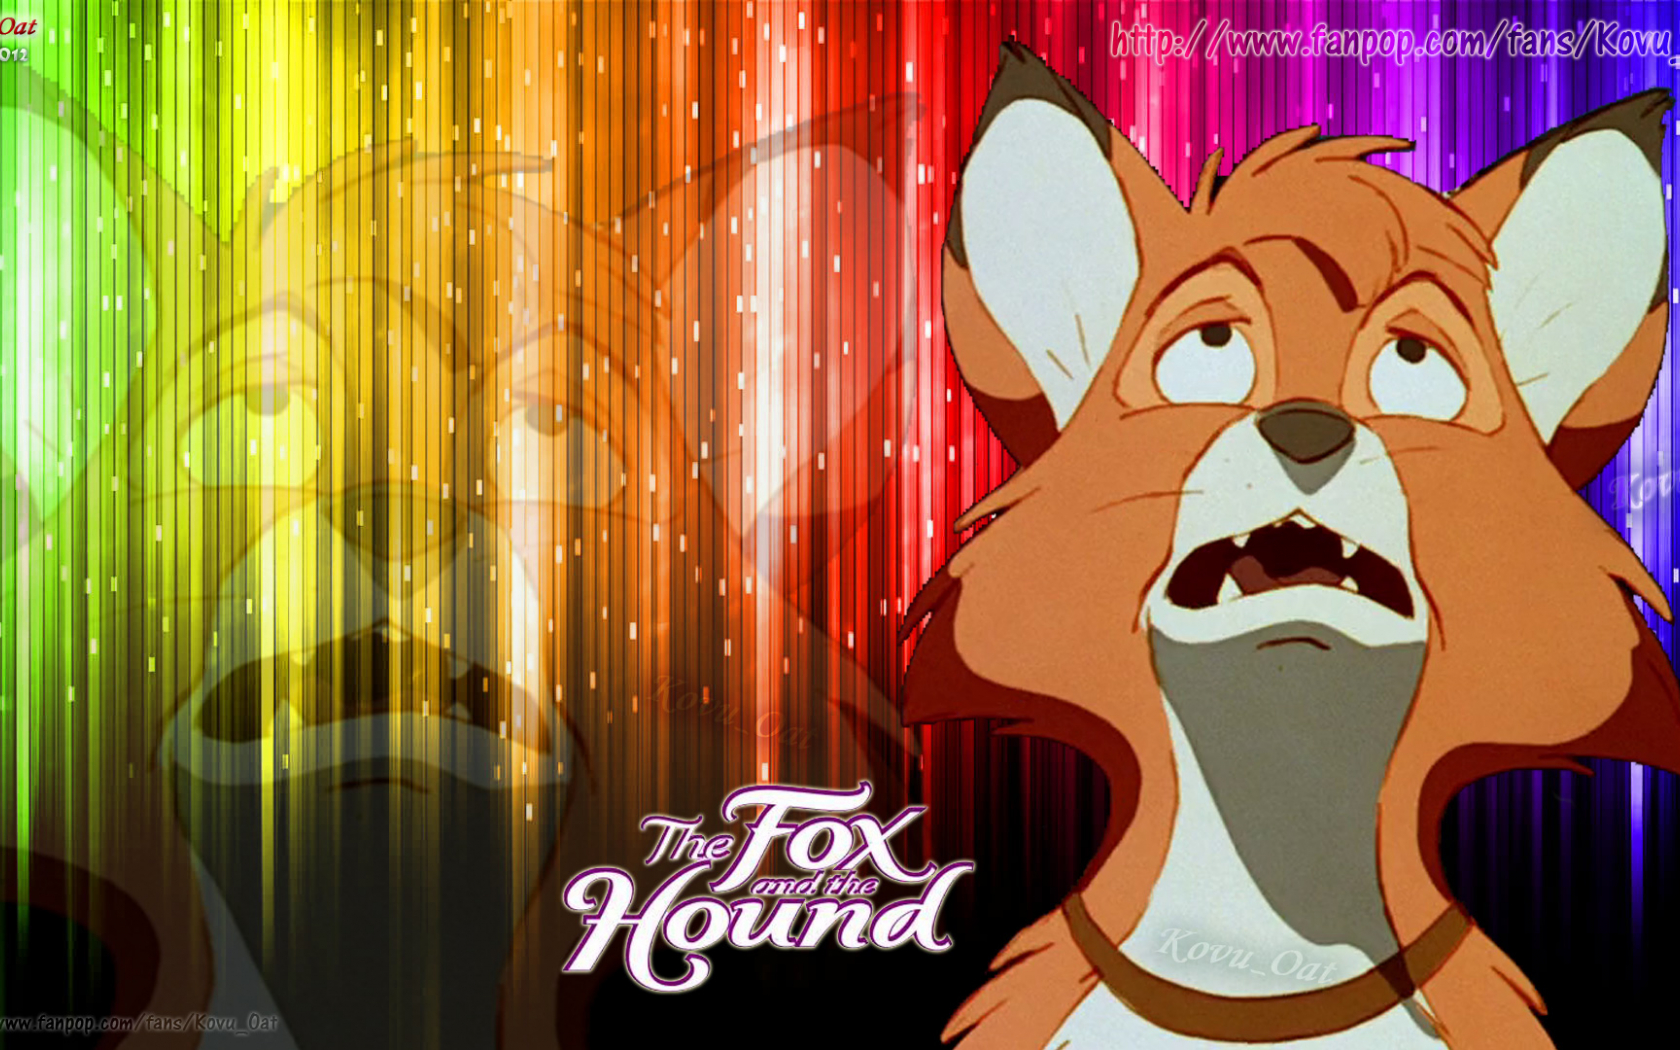 Free Download Tod From The Fox And The Hound Wallpaper Hd The Fox